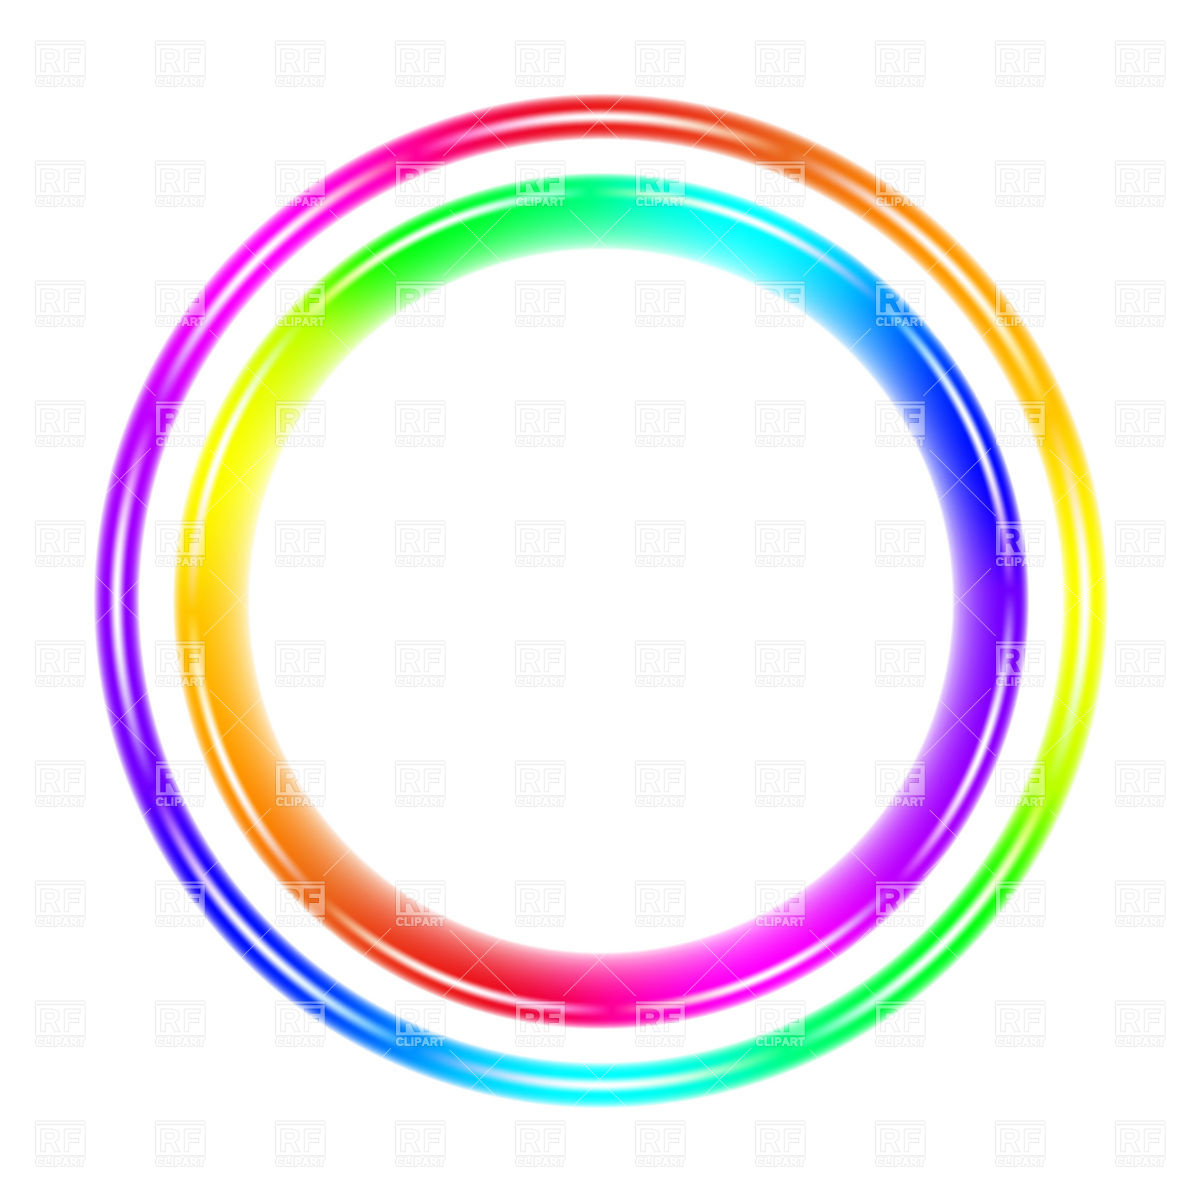 photoshop how to change color of circle